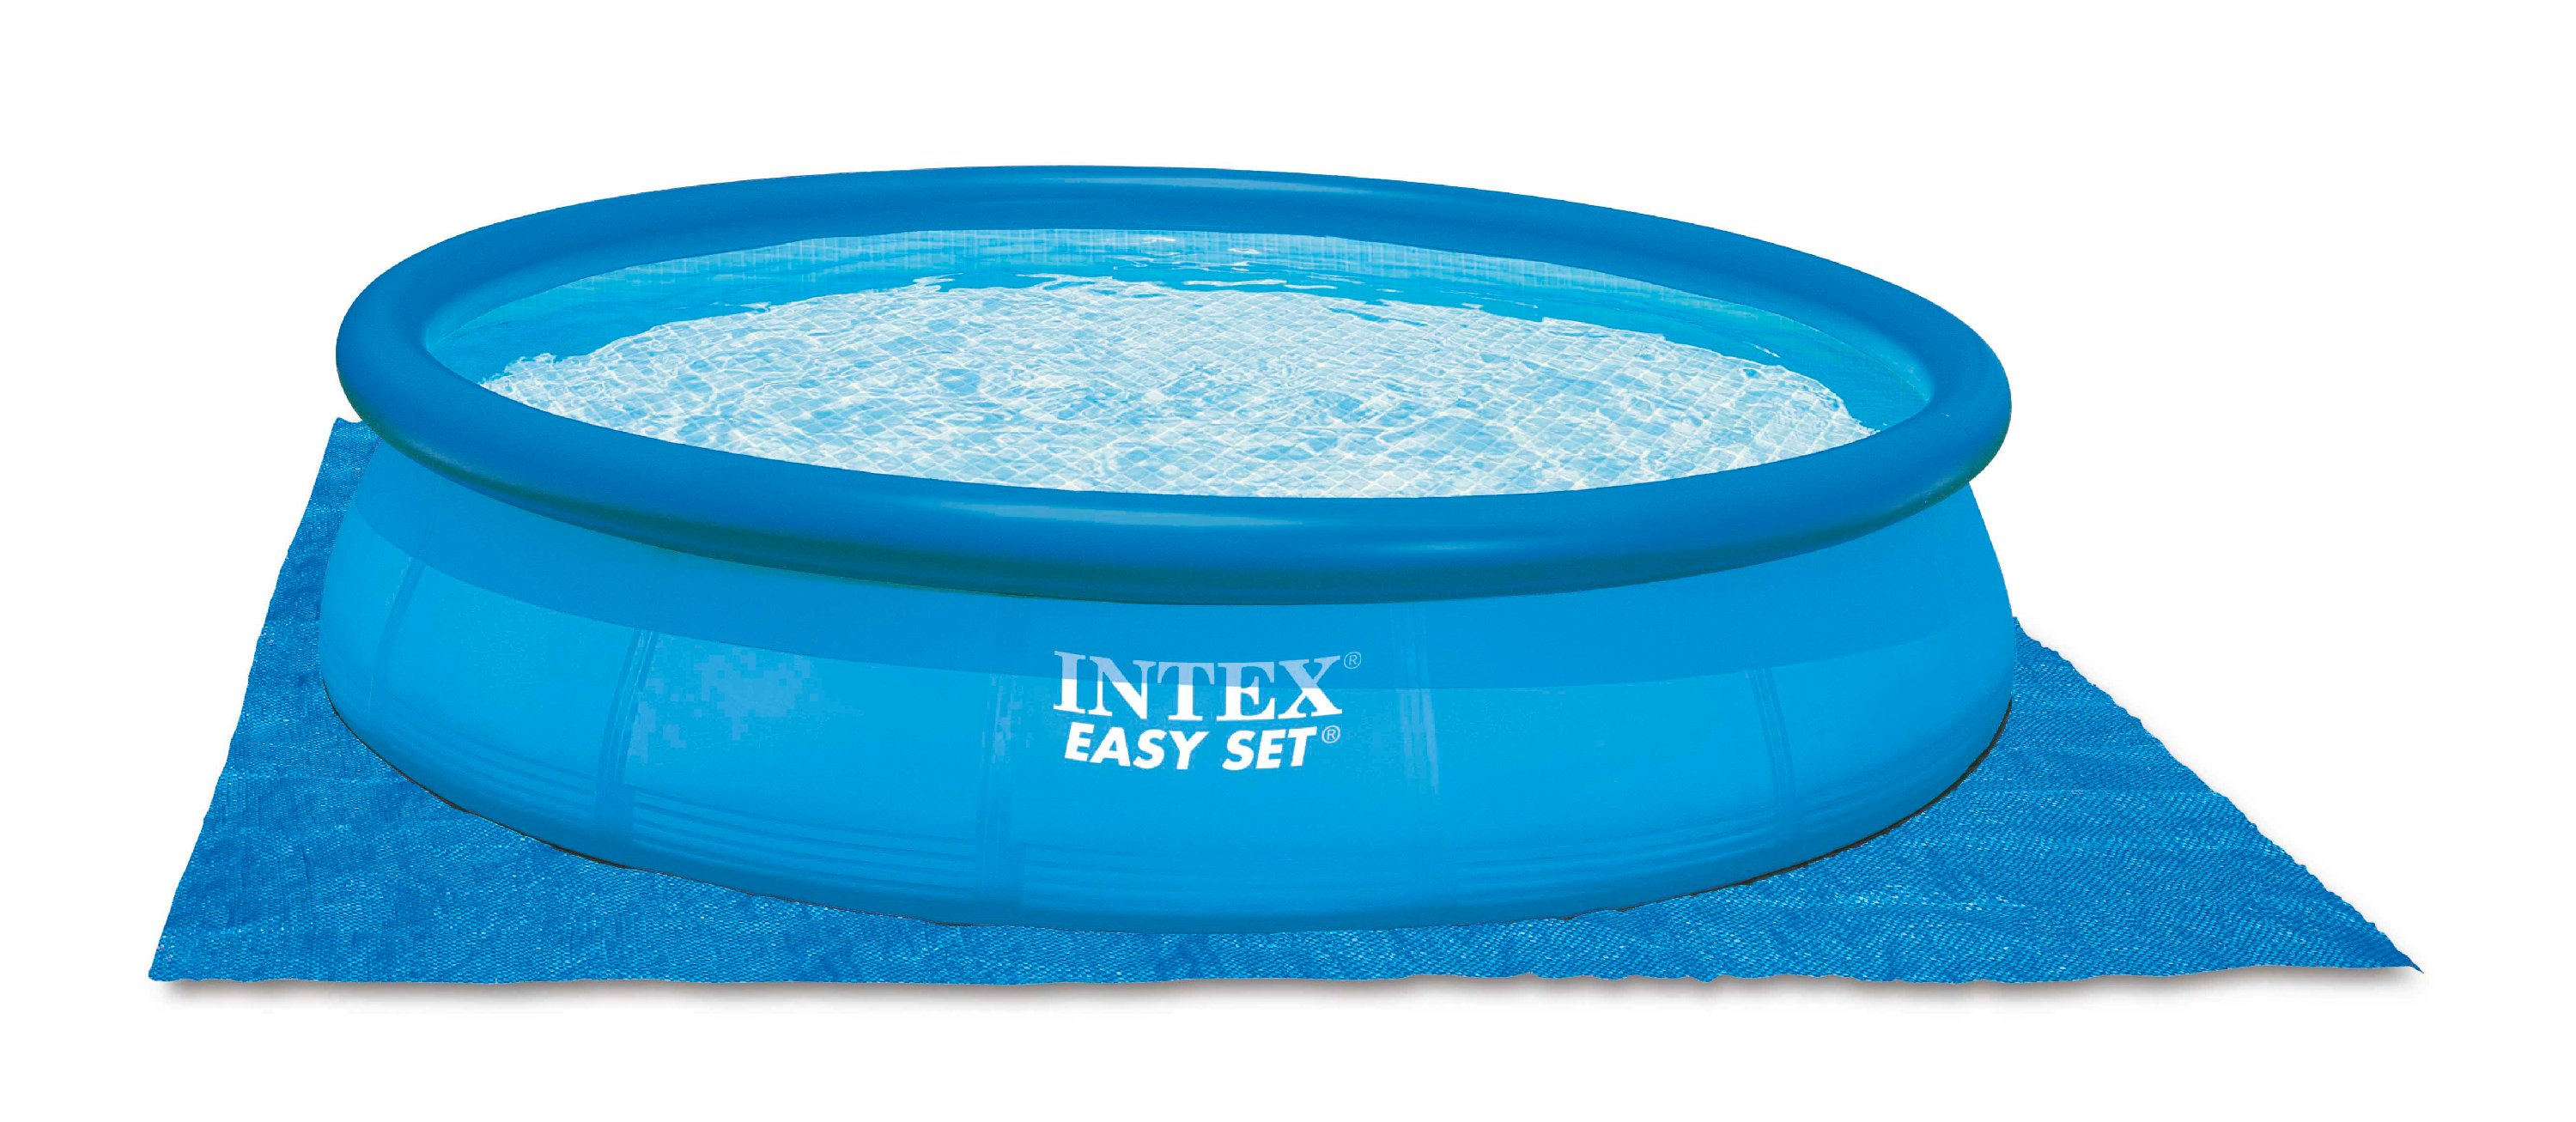 Easy set inflatable swimming pools intex rudy Intex inflatable swimming pool